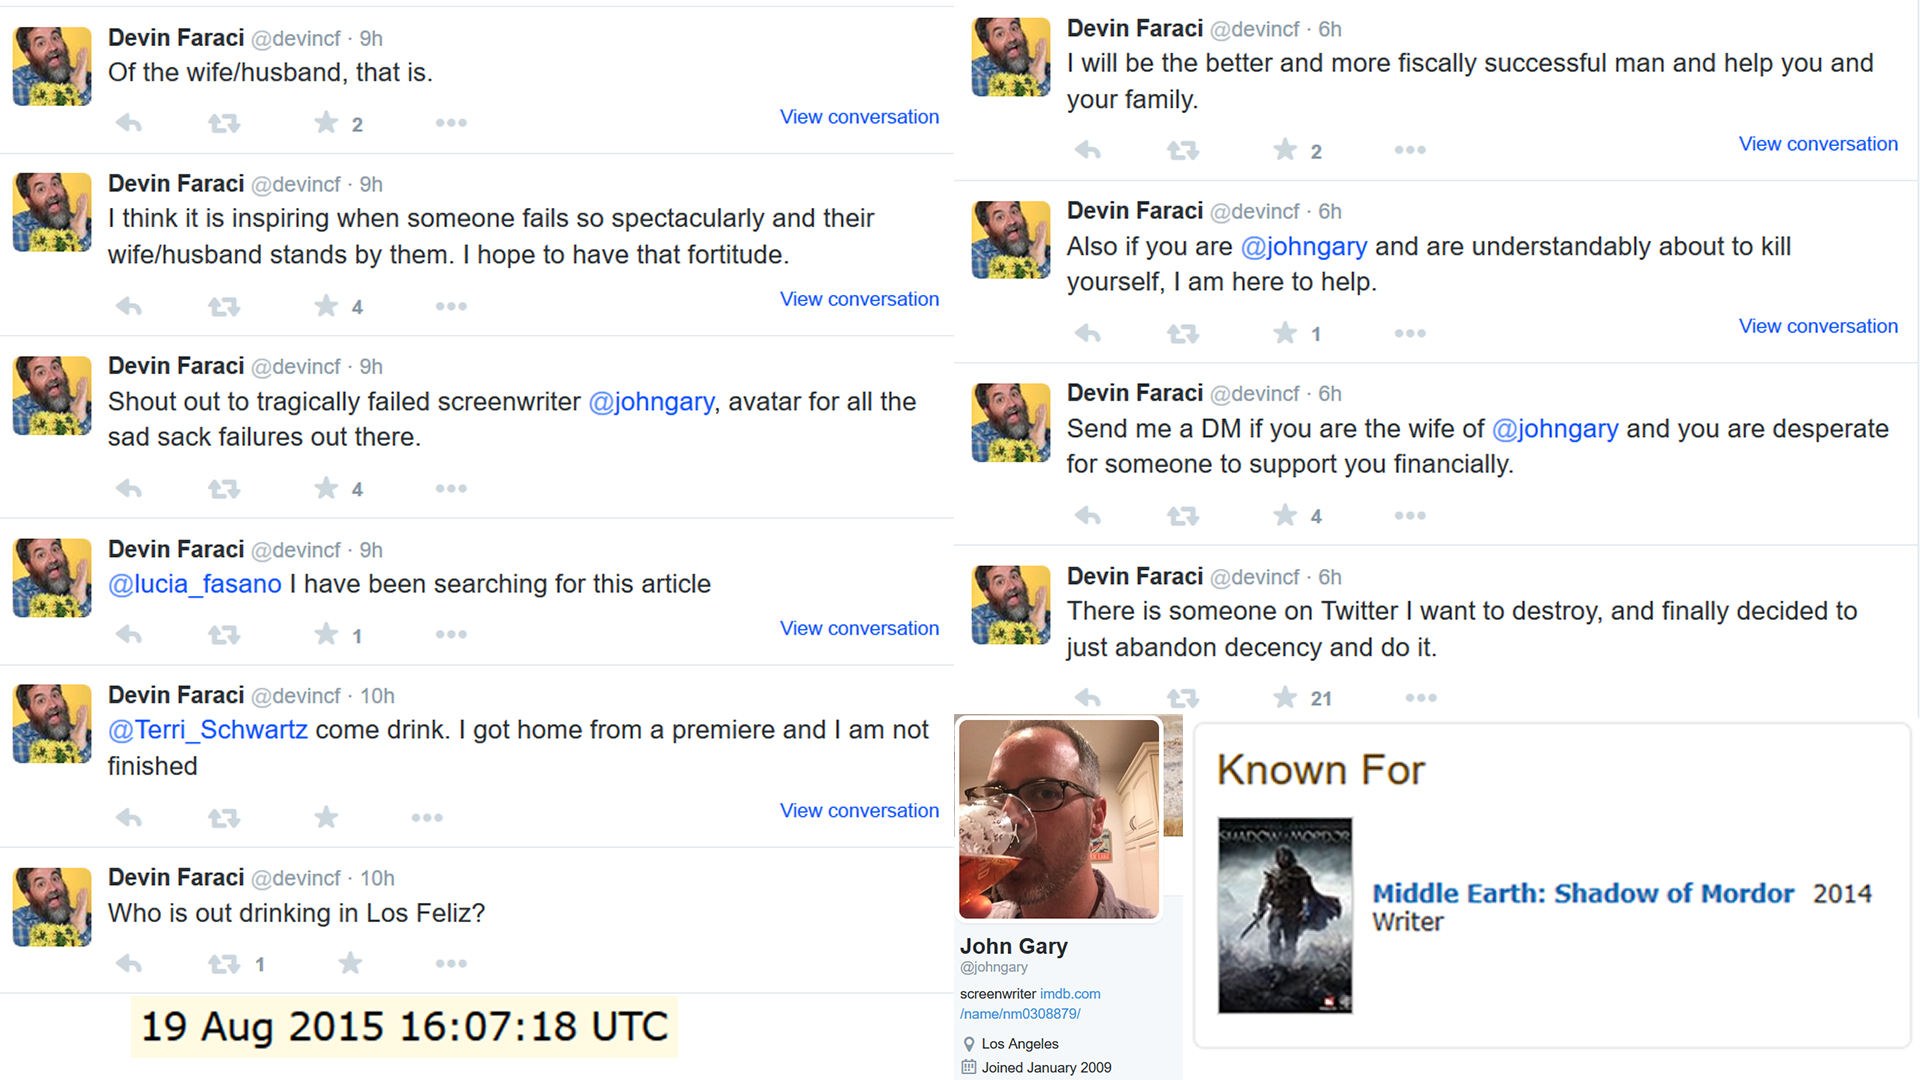 """8d8453e40 On August 19th 2015, Faraci attacked John Gary on Twitter. With the  apparent intent of """"destroying"""" him, Faraci urged Gary to commit suicide  and offered to ..."""